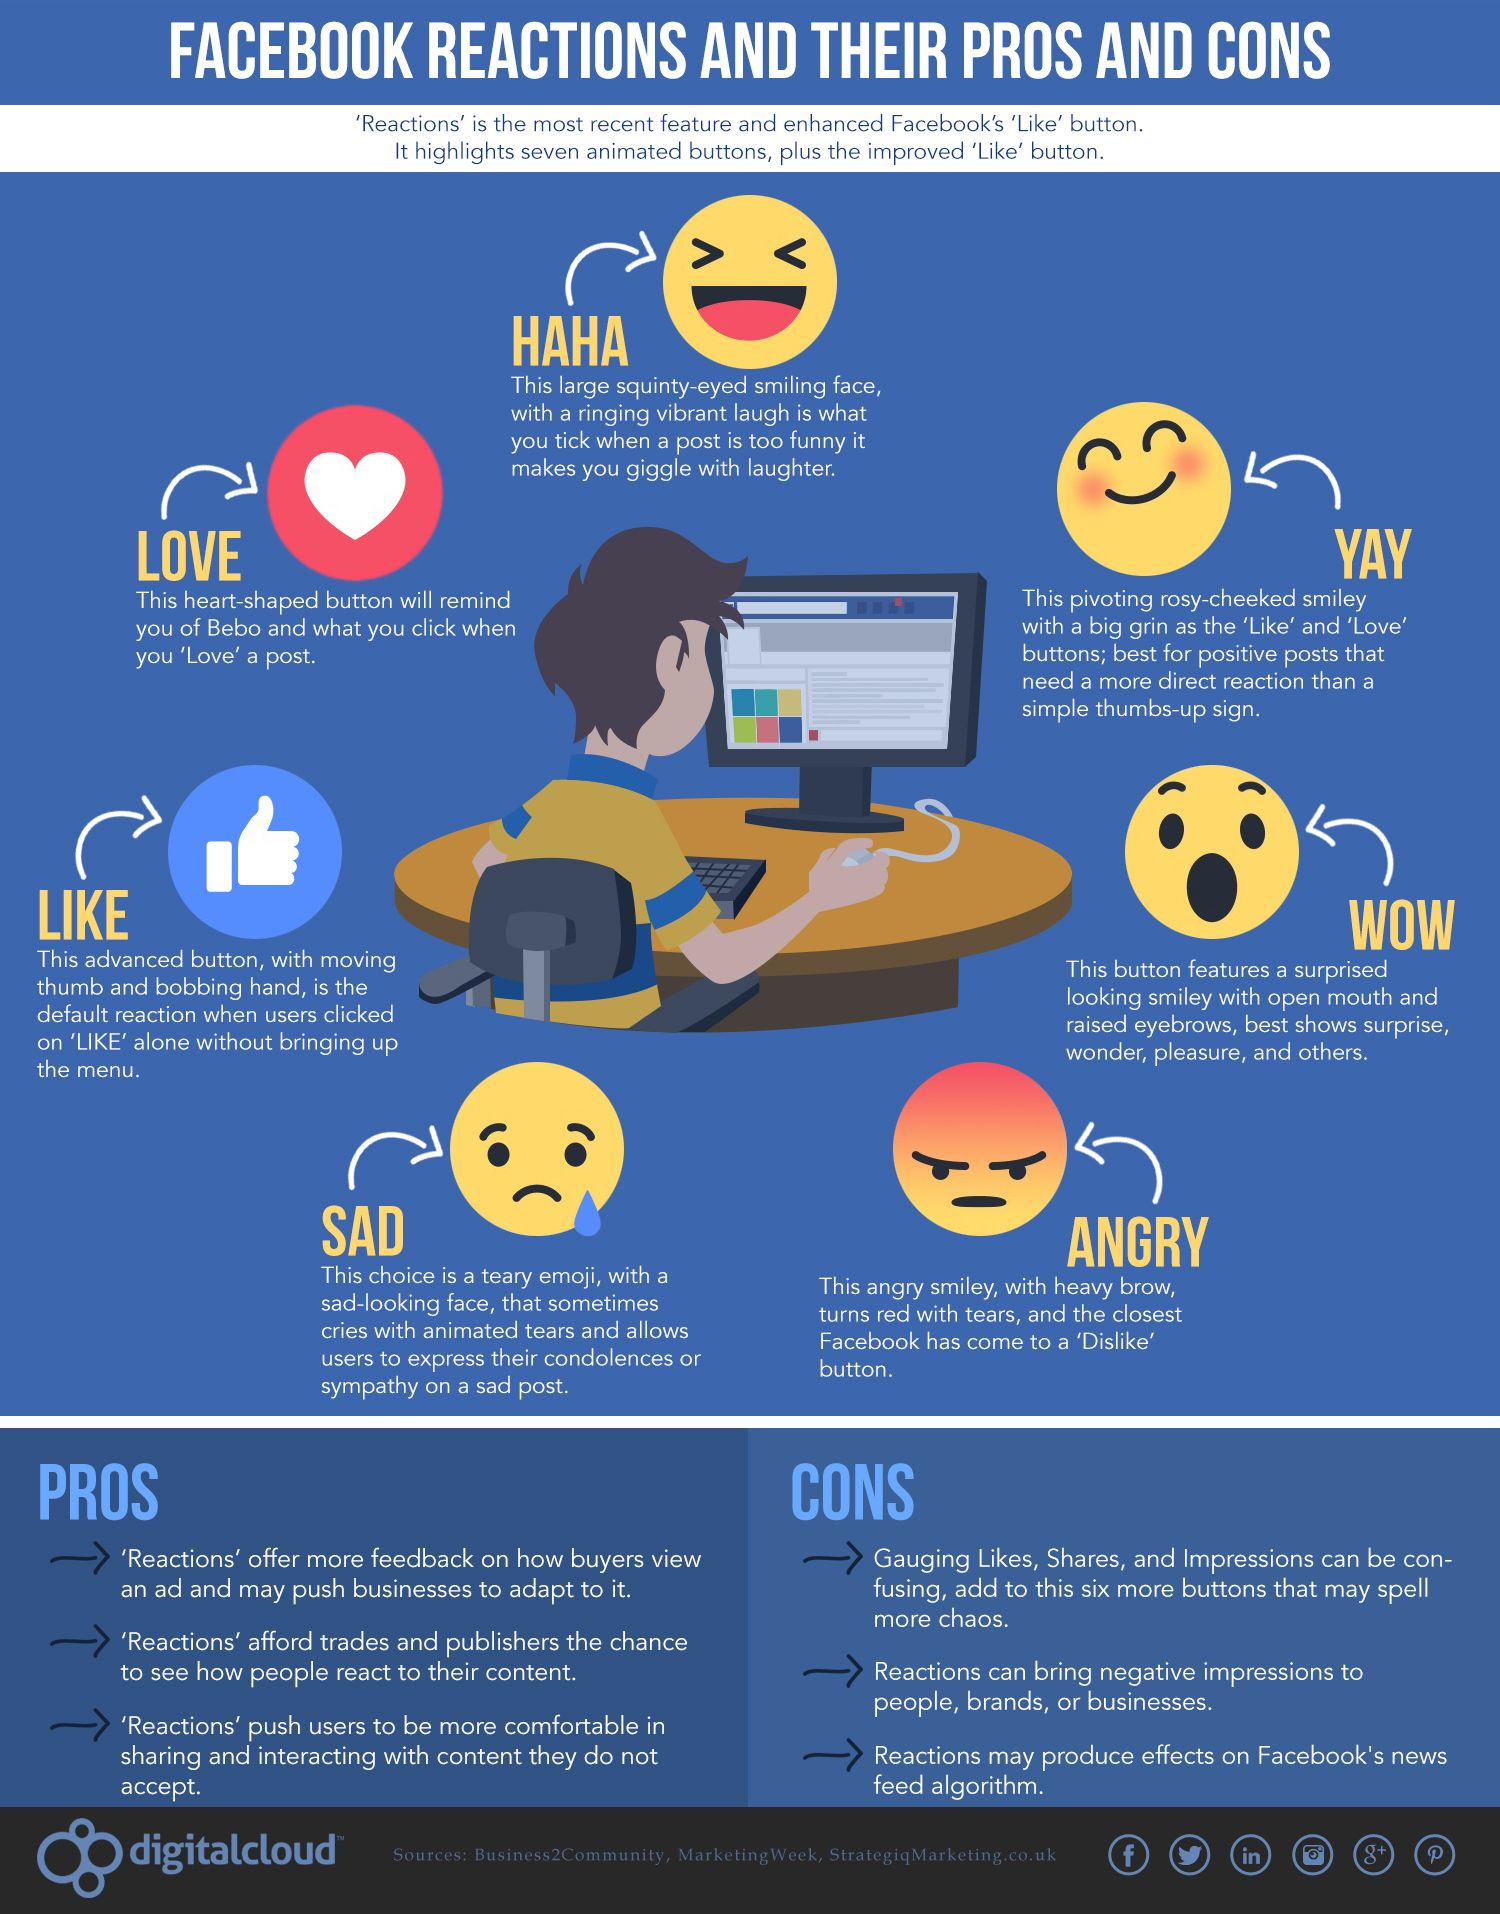 Facebook Reactions and Their Pros and Cons